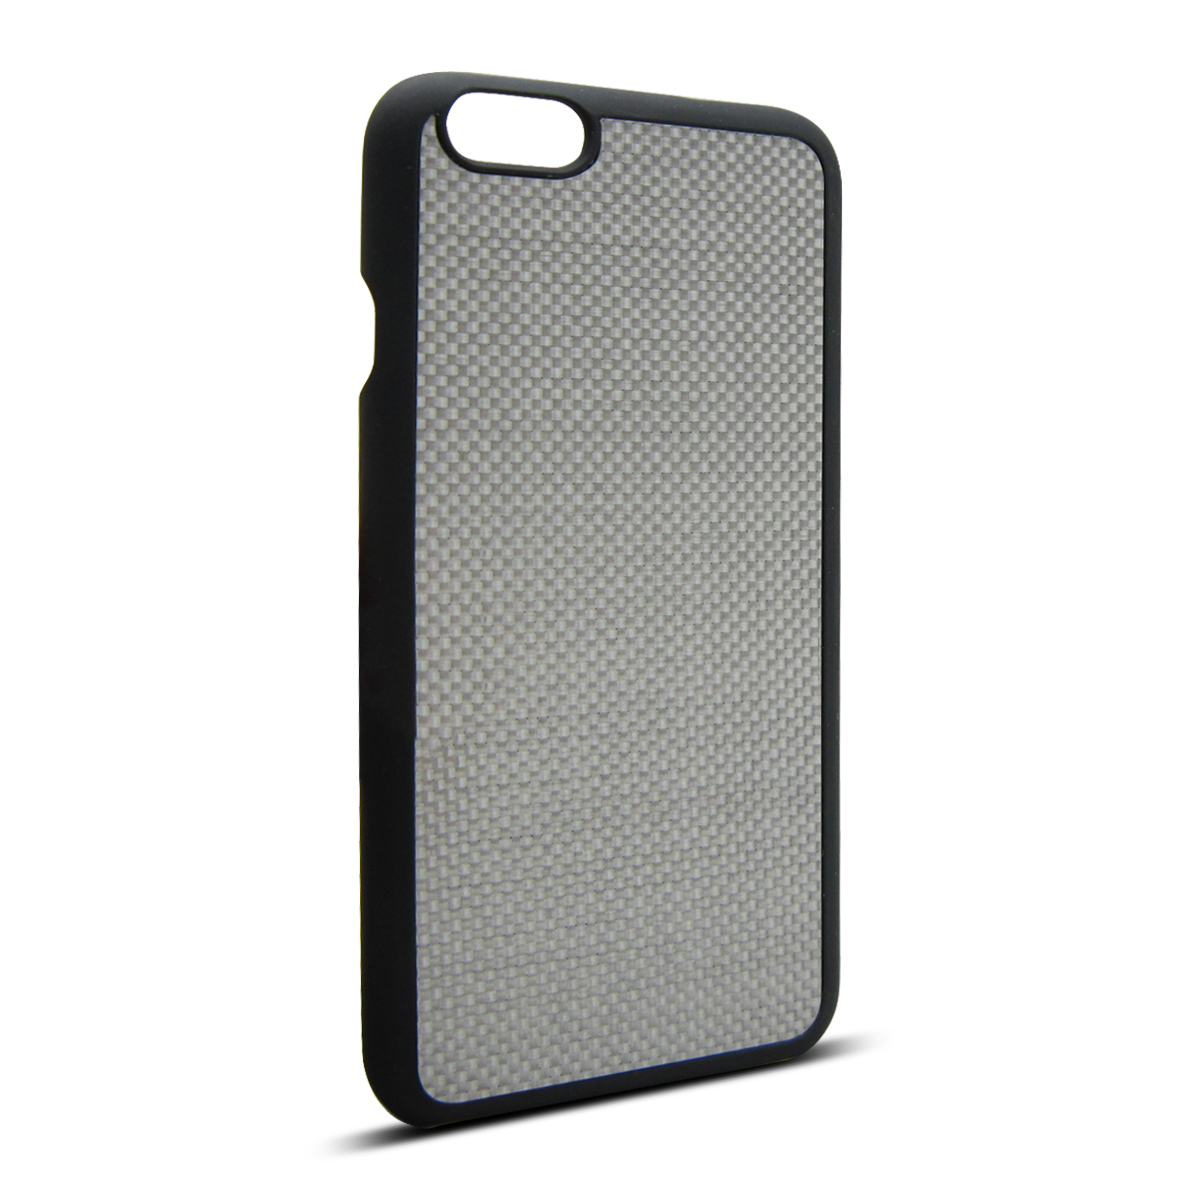 Silver Carbon Fiber PC Phone Case for iPhone 6 4.7inch